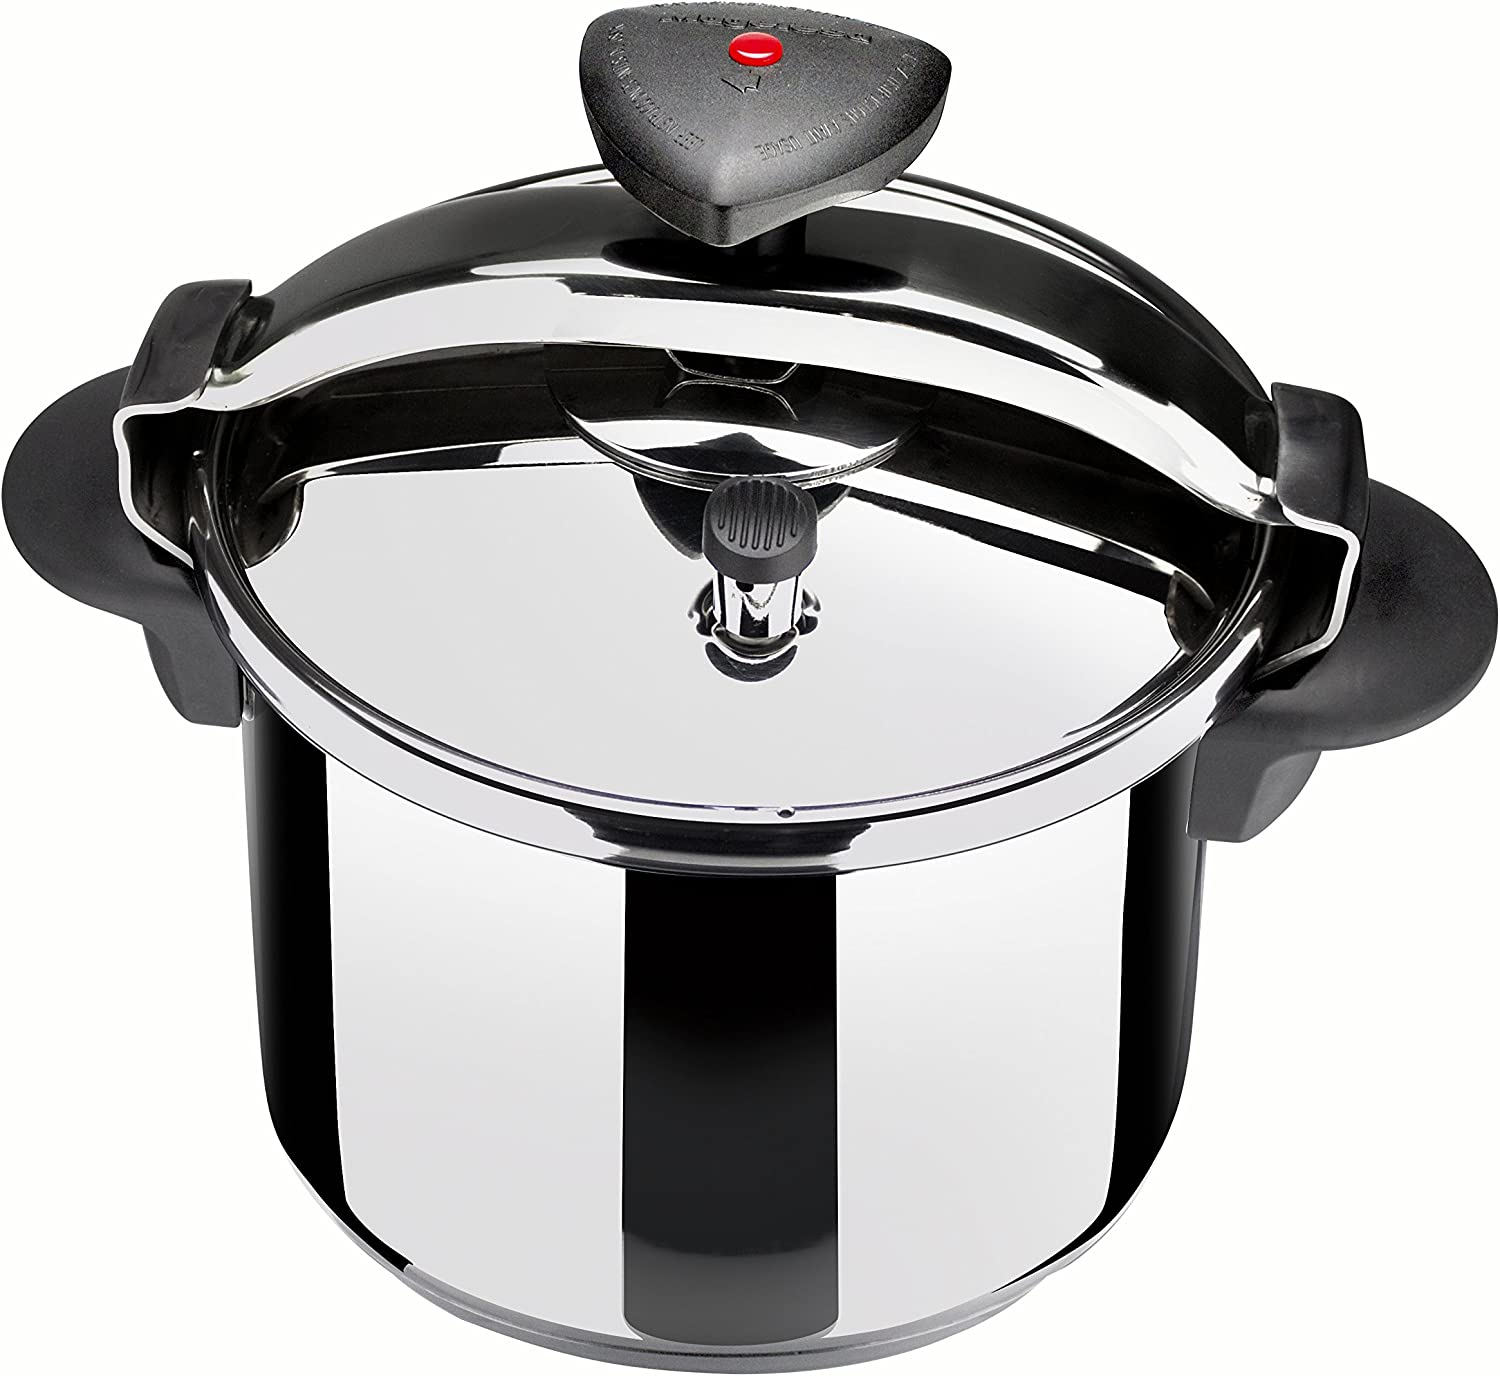 Magefesa 01OPSTACO04 Star R Stainless Steel F.P.C. Pressure Cooker, 4-Quart